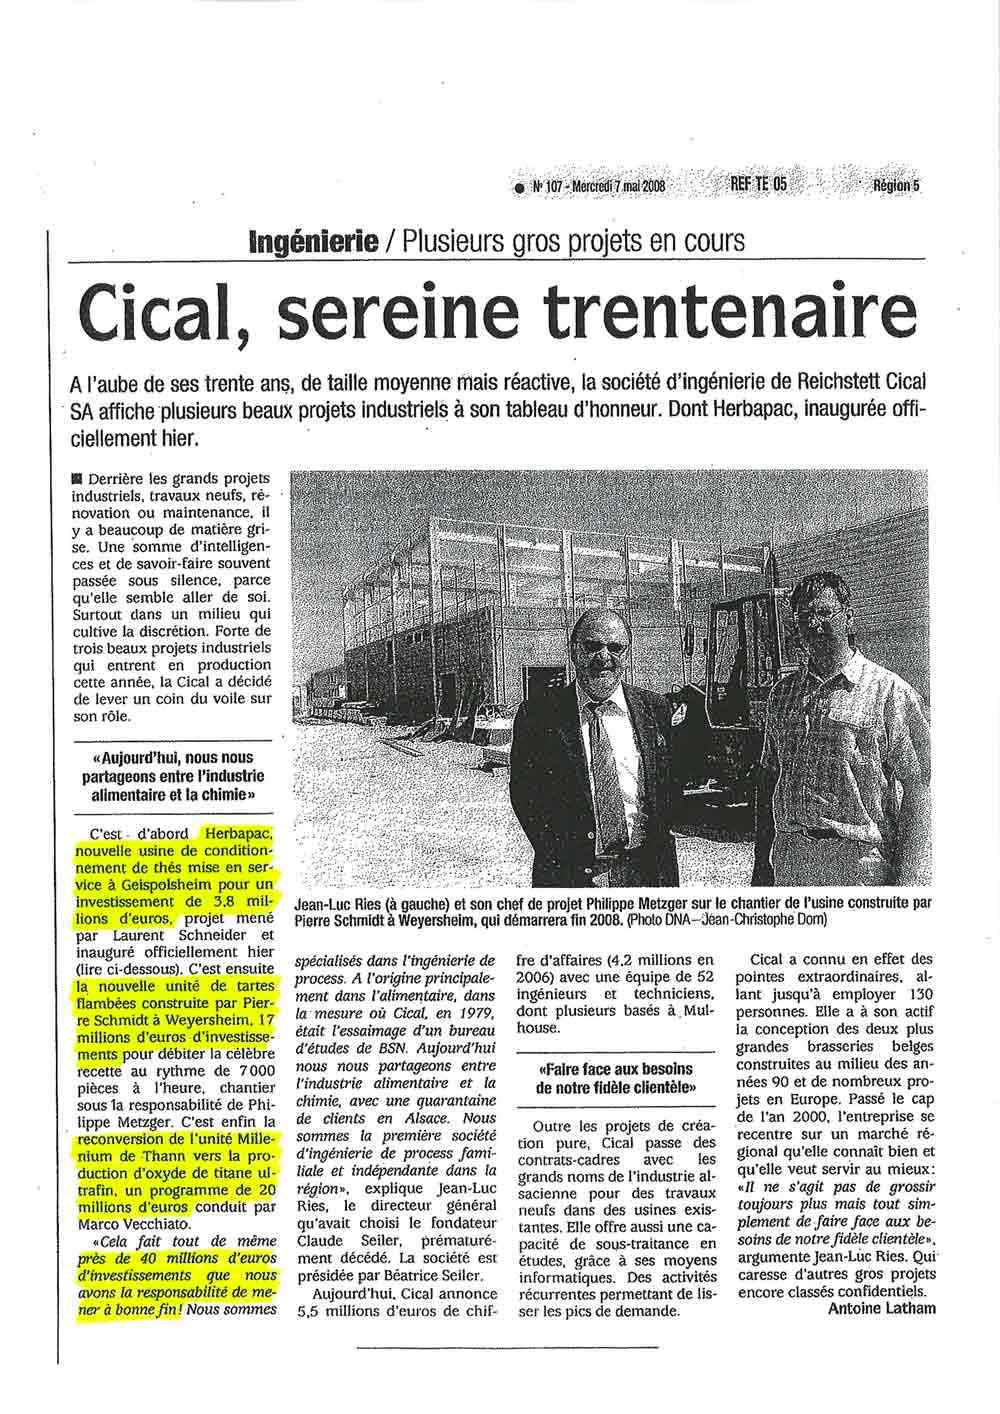 ARTICLE-DNA-2008